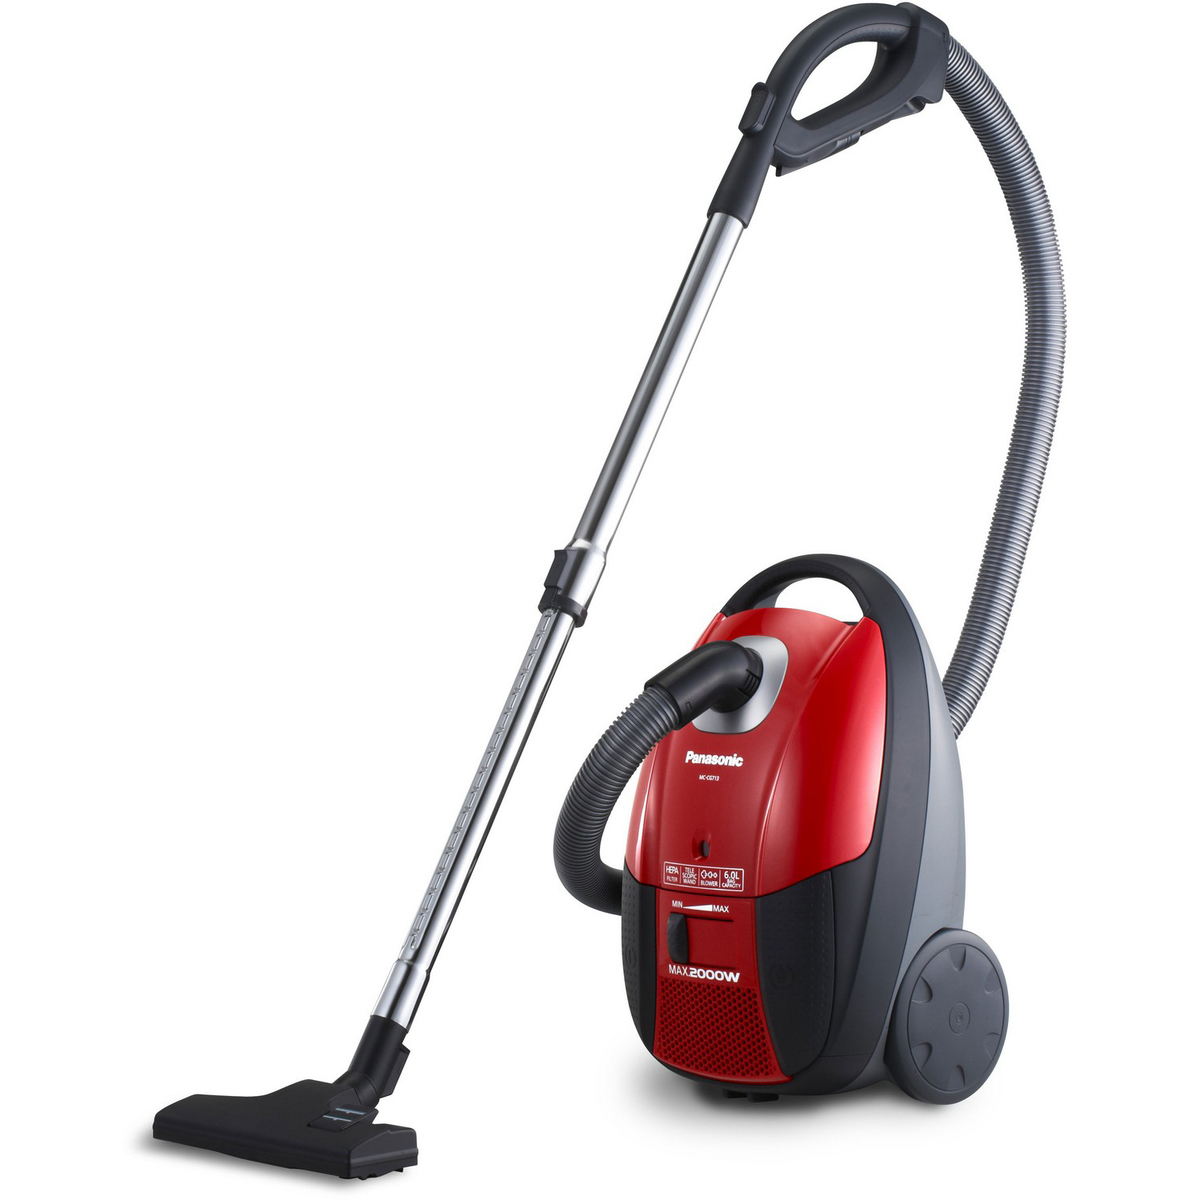 Panasonic is one of the leading vacuum cleaner brands on the market Source; lulu.com